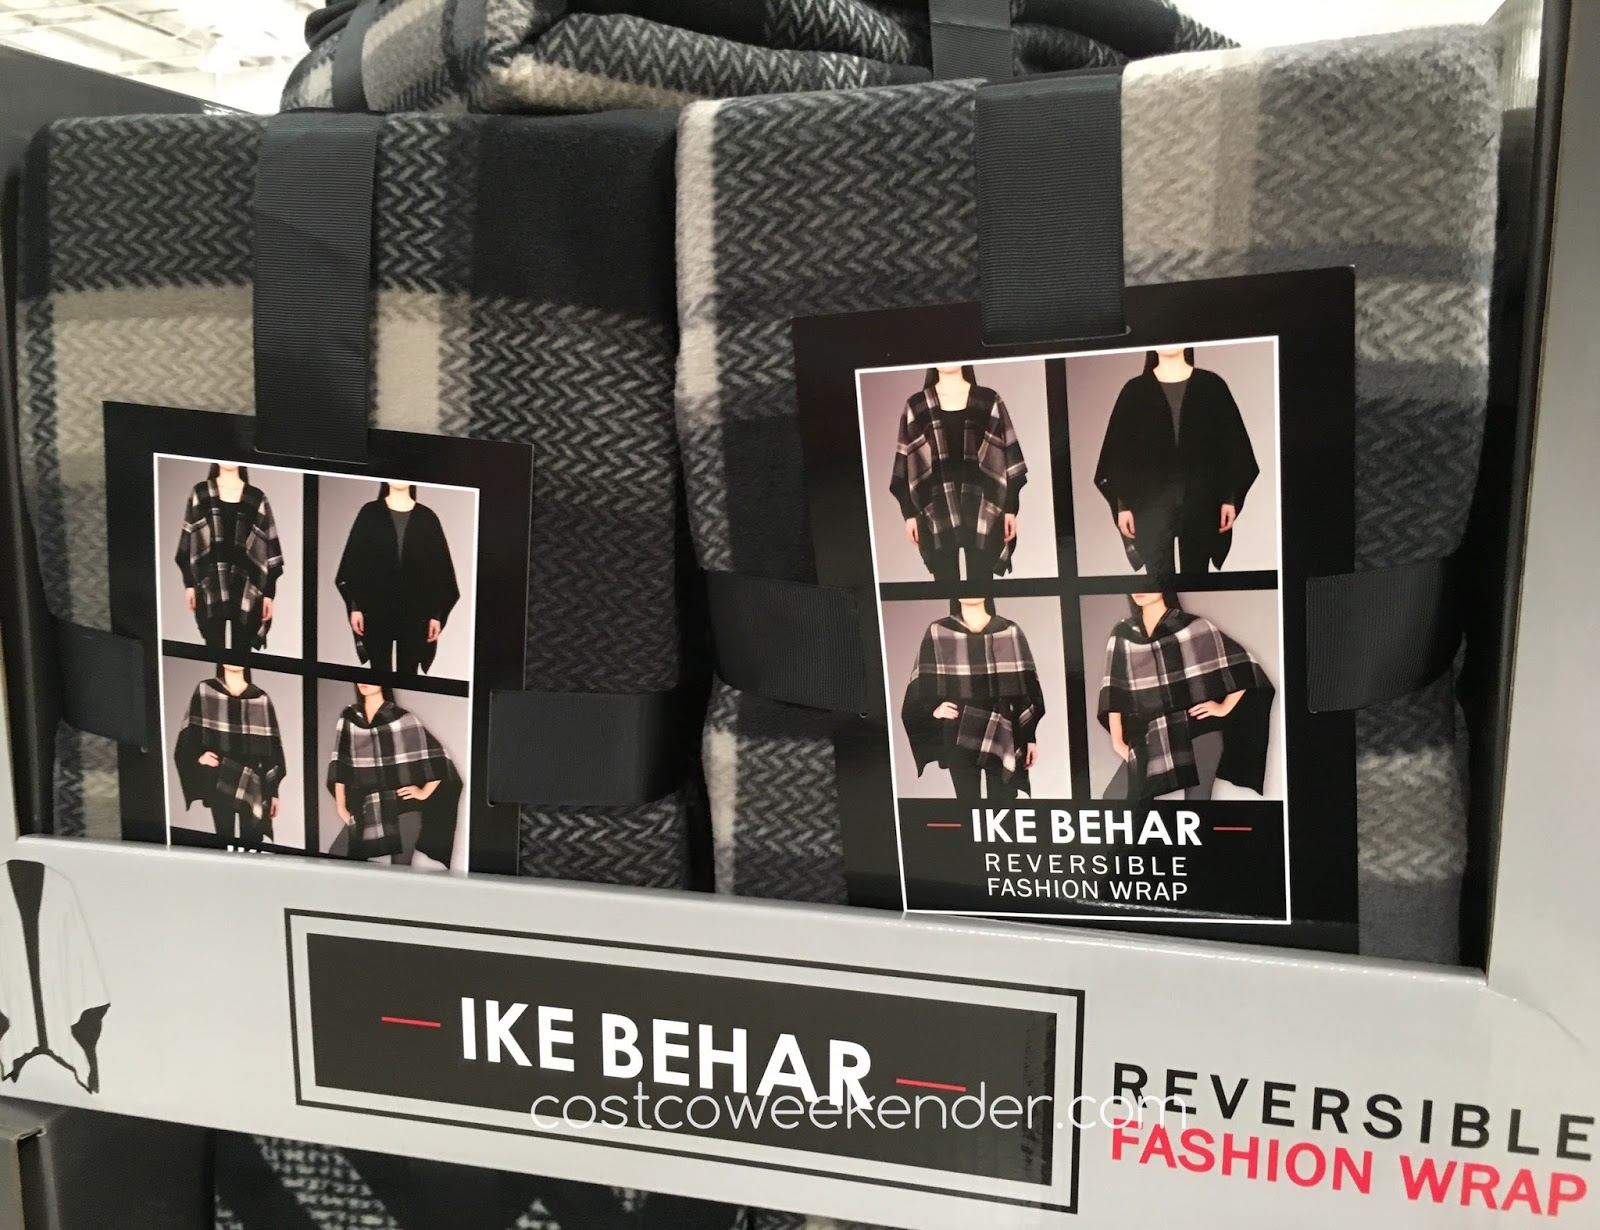 Stay warm when the temperature drops with the Ike Behar Reversible Fashion Wrap